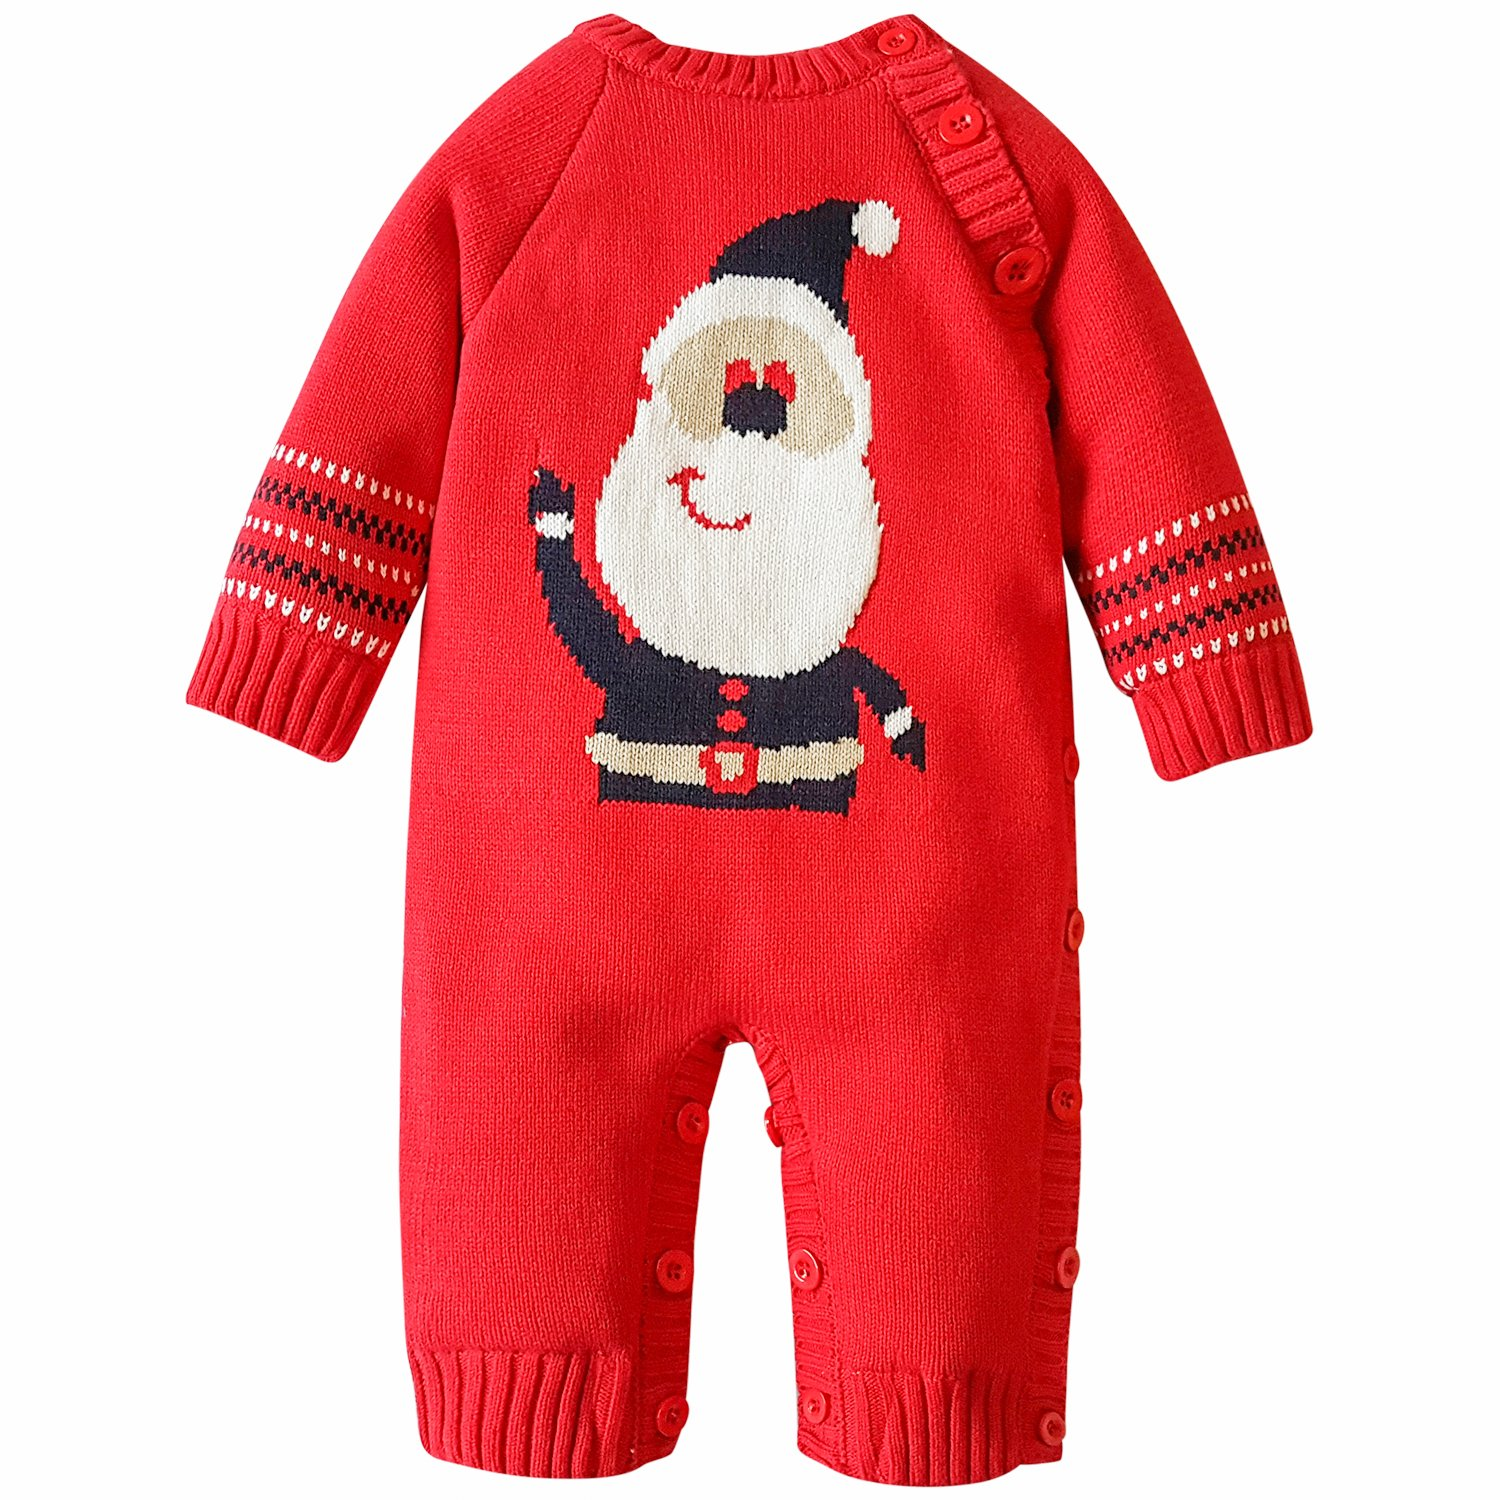 ZOEREA Baby Sweater Cartoon Pattern toddler Romper Suit Christmas 0-18 Months Y58